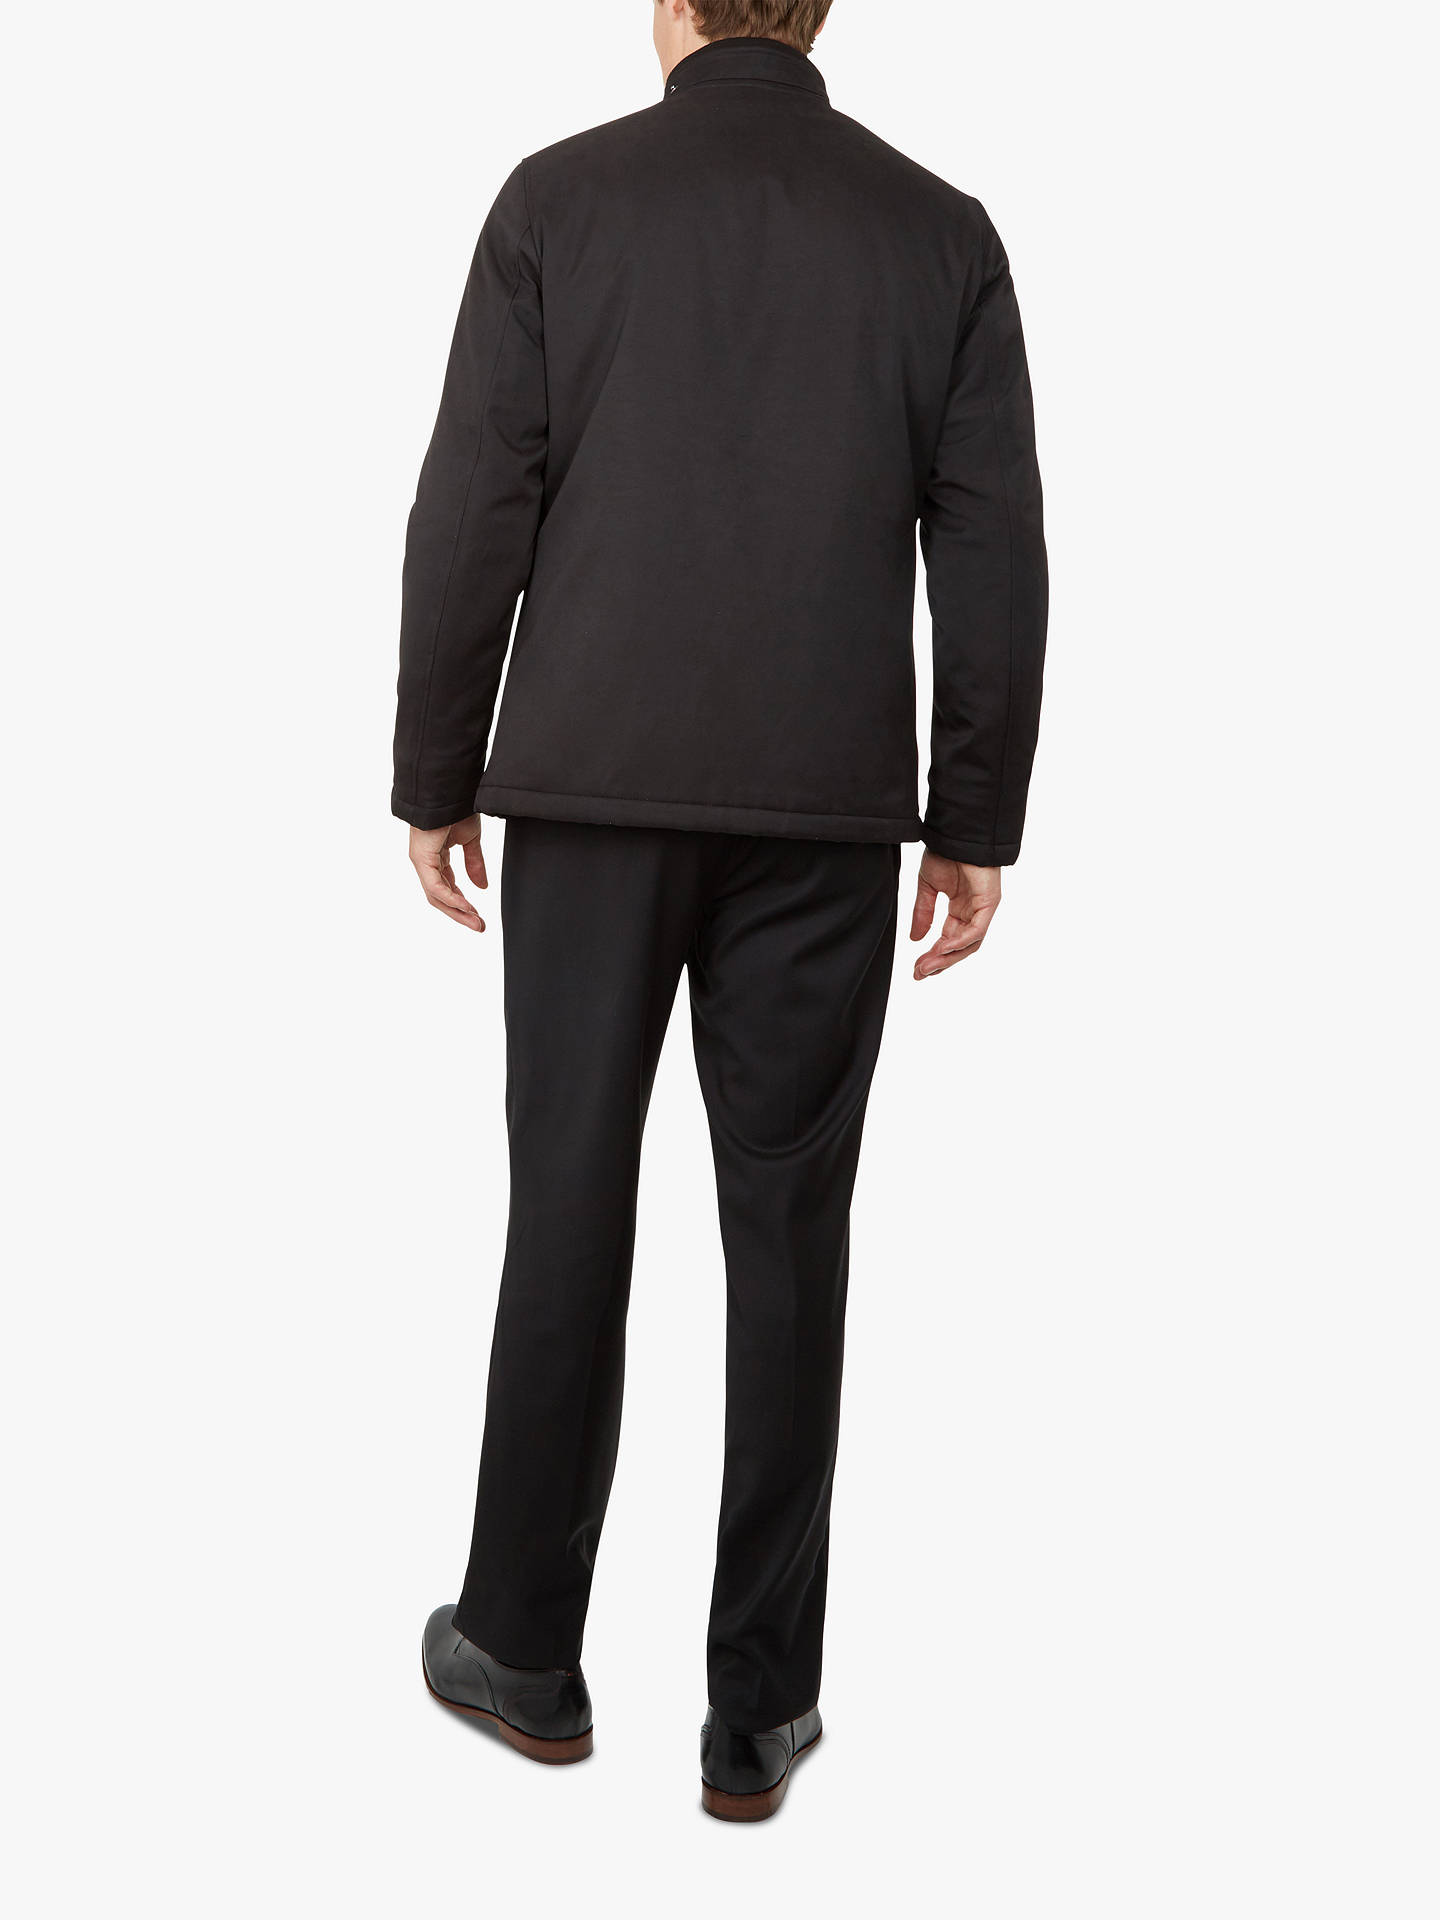 BuyTed Baker DRAL Quilted Jacket, Black, XL Online at johnlewis.com